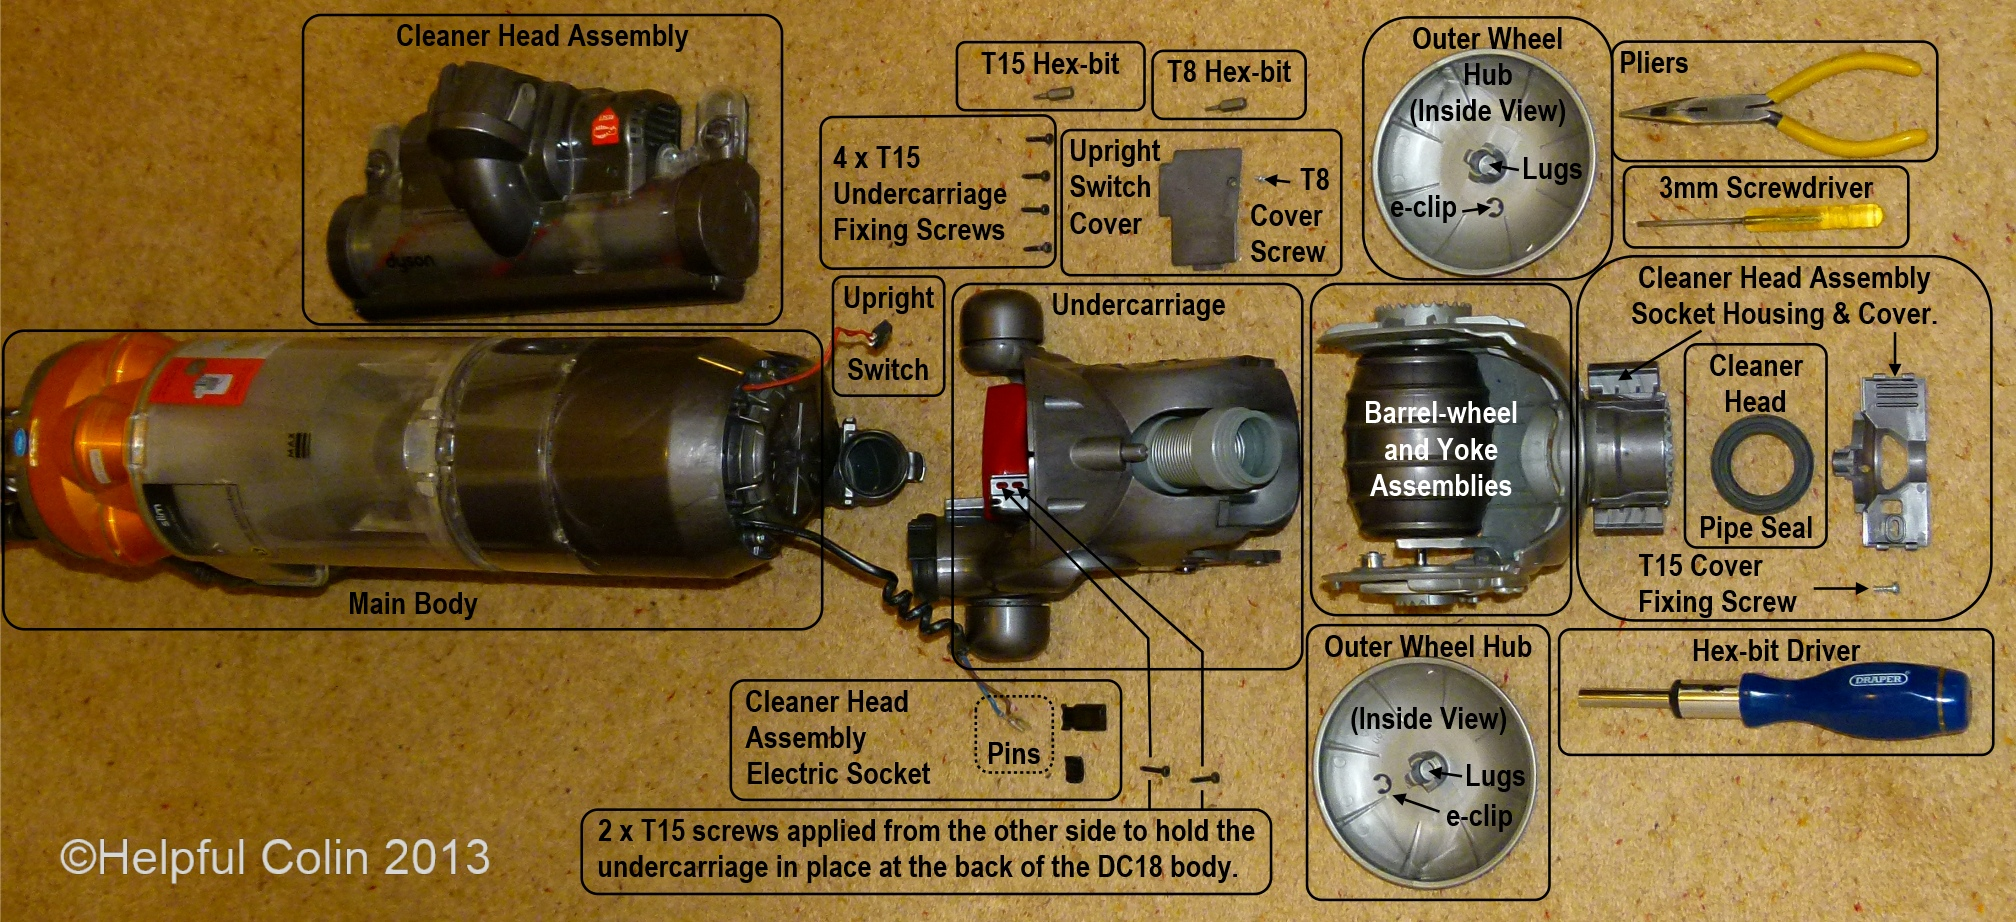 Charming Boiler Diagram Thin Pot Diagram Shaped Hss Wiring Electric Guitar Wire Old 2 Humbuckers 1 Volume 1 Tone 3 Way Switch BlackTsb Automotive Dyson Slim DC18 Undercarriage Repair   Helpful Colin